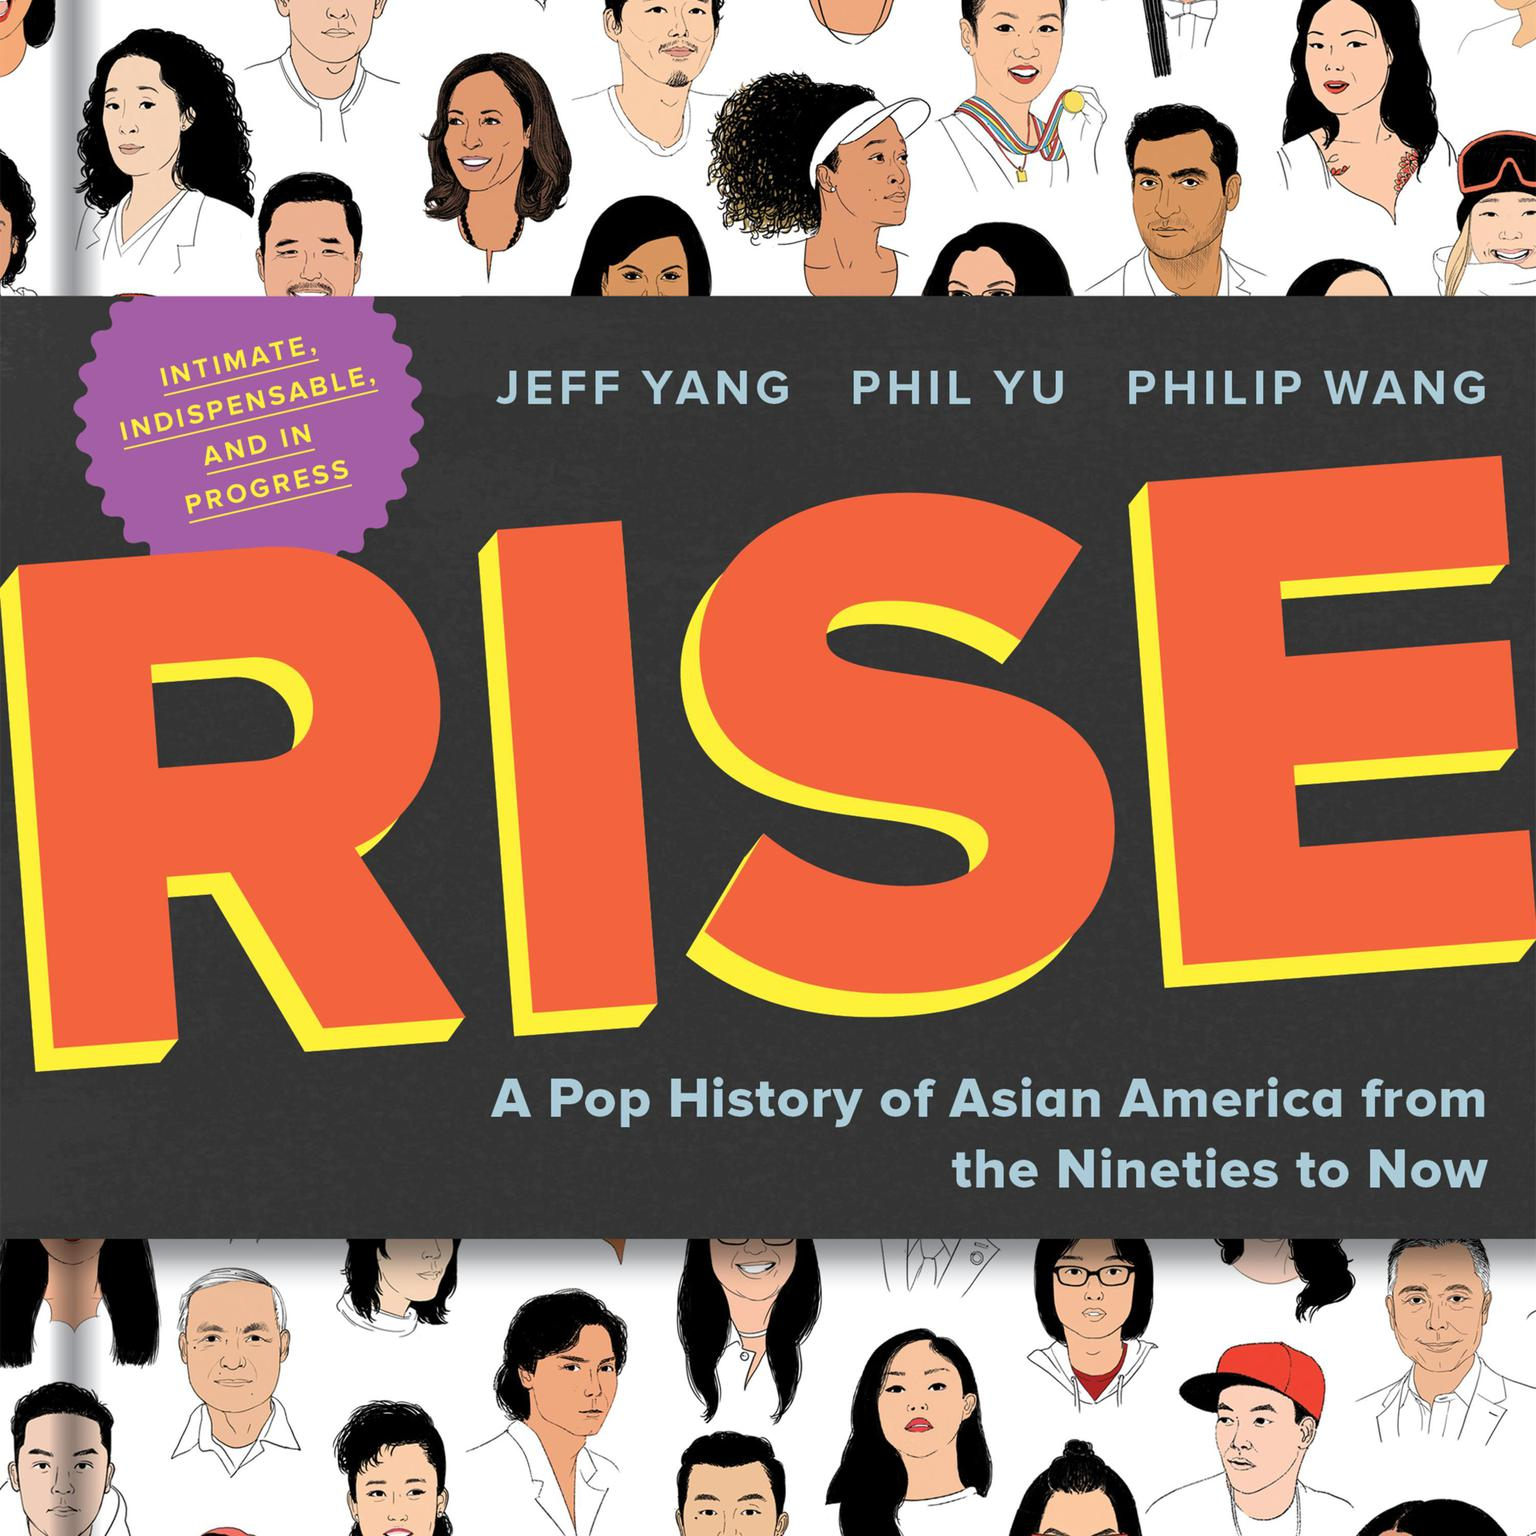 Rise: A Pop History of Asian America from the Nineties to Now Audiobook, by Jeff Yang